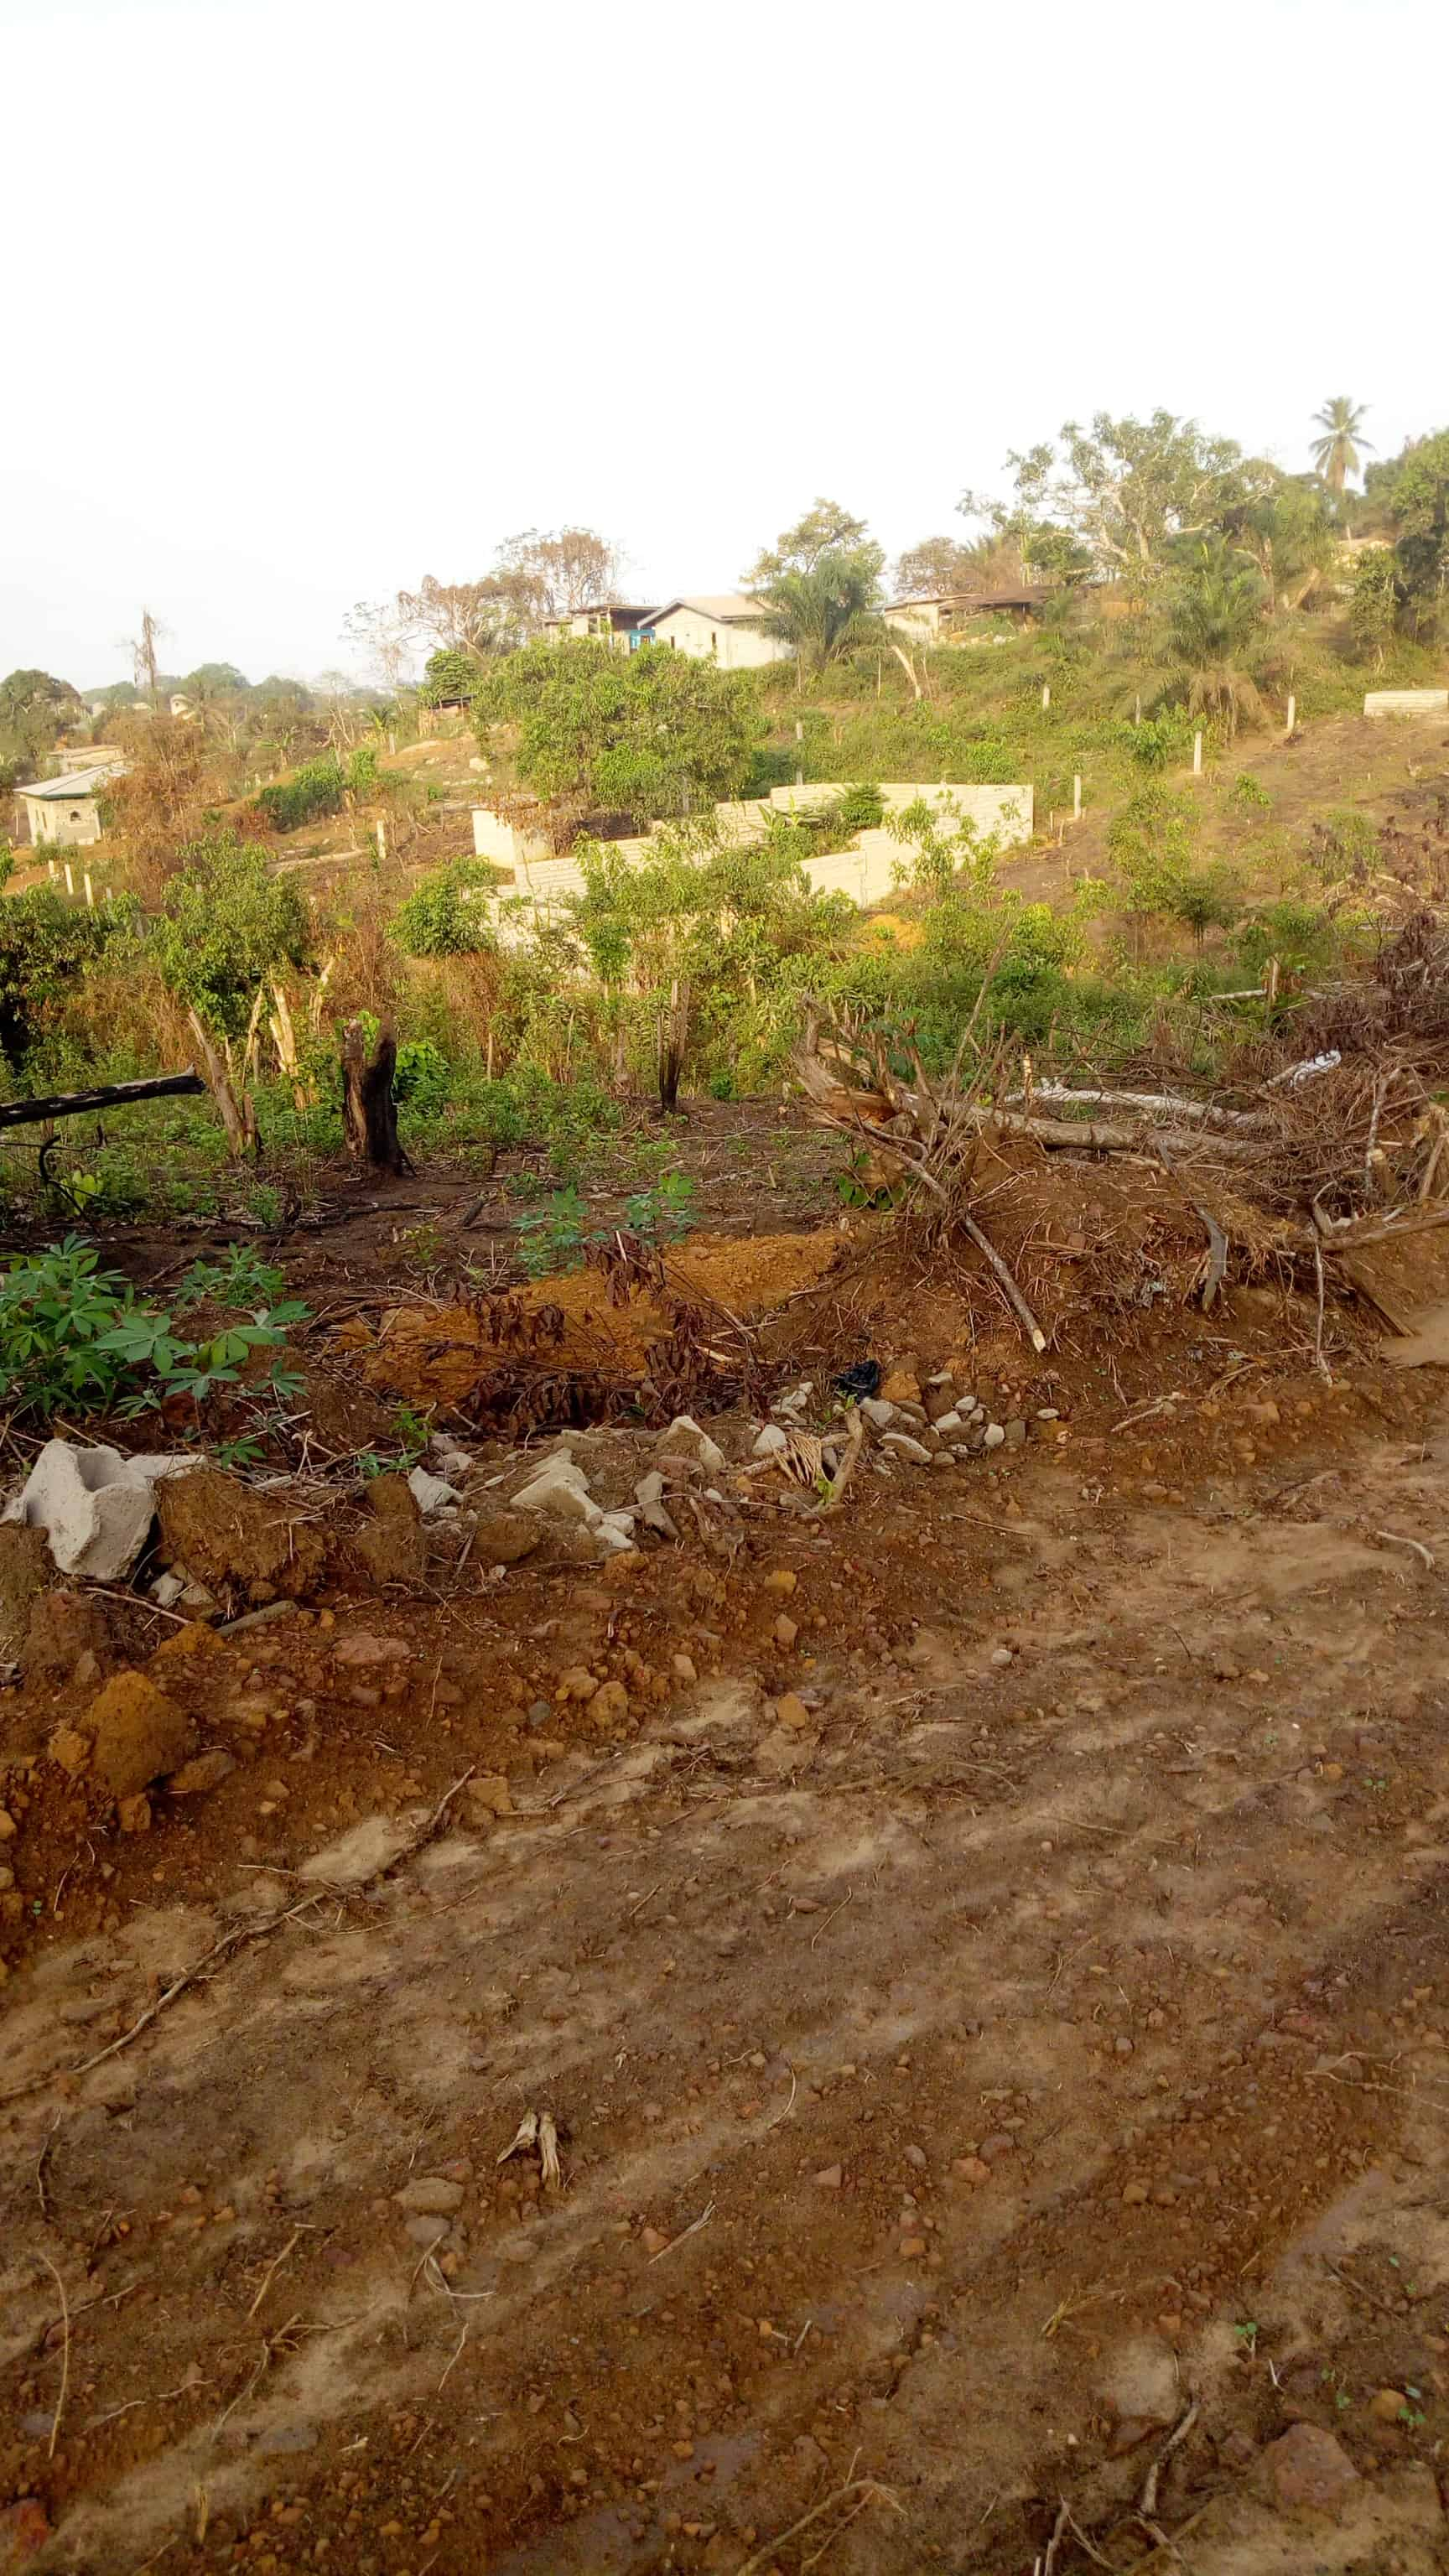 Land for sale at Douala, Bassa, Pk21 - 250 m2 - 20 000 000 FCFA